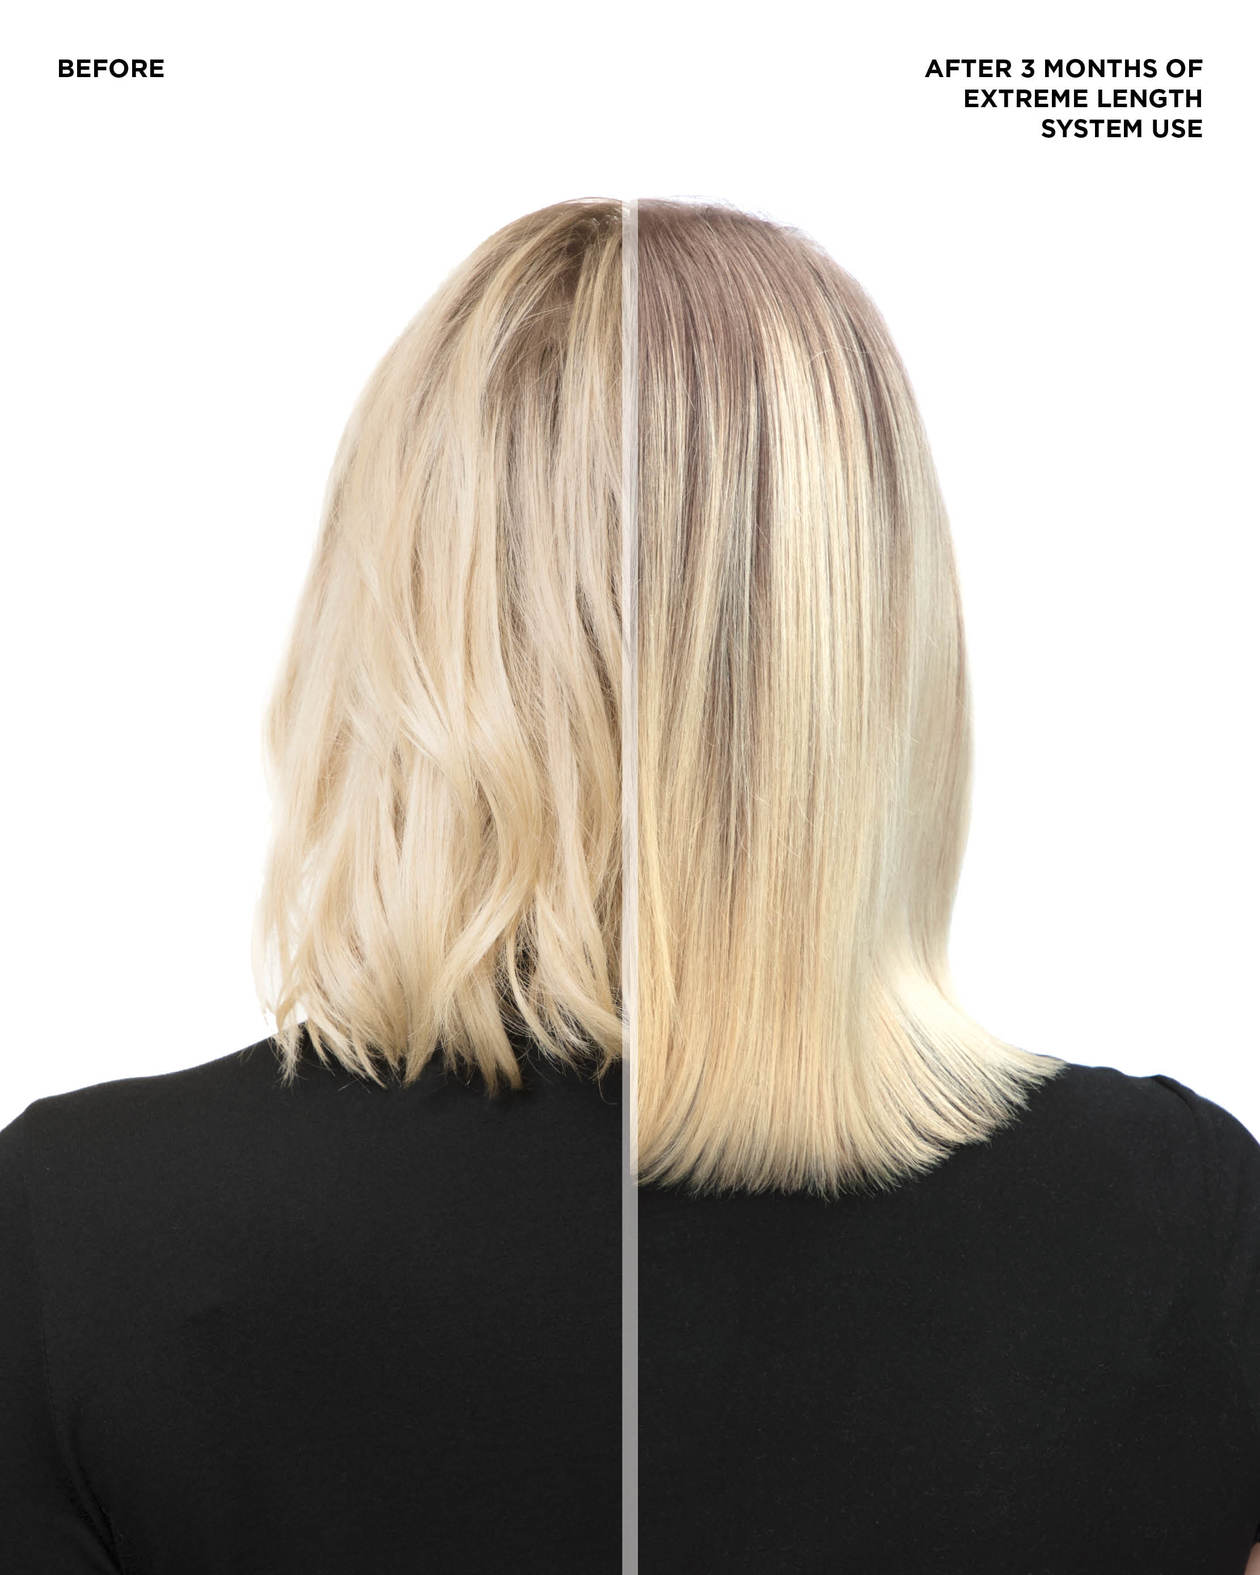 Redken-2019-Extreme-Length-Social-Post-34